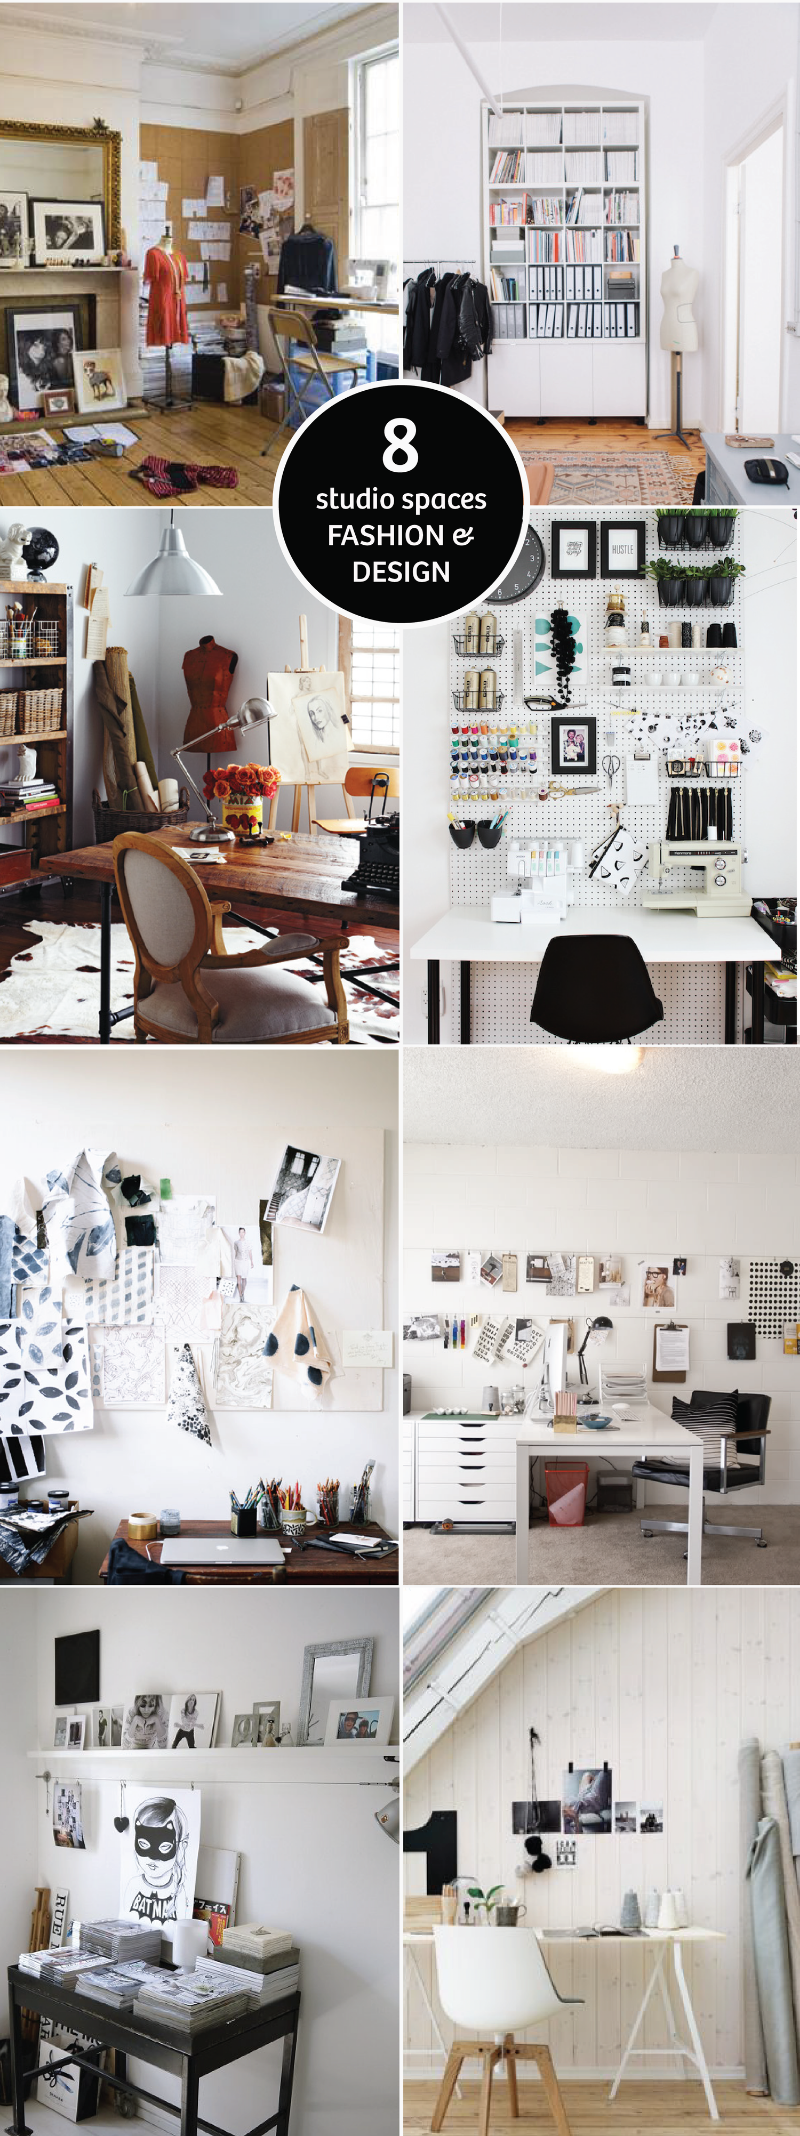 Images: (Top Left) Fashion Designer Jemima French's home studio via The Independent , (Top Right) Johanna Schneider's home studio via Freunde von Freunde, (Upper Middle Left) via Style at Home, (Upper Middle Right) Mandy Pellegerin's home studio via Fabric Paper Glue, (Lower Middle Left) Rebecca Atwood's home studio via Apartment 34, (Lower Middle Right) Lindsay Stetson's home studio via Eva Black Design, (Bottom Left) via Vosgesparis, (Bottom Right) via Homedit